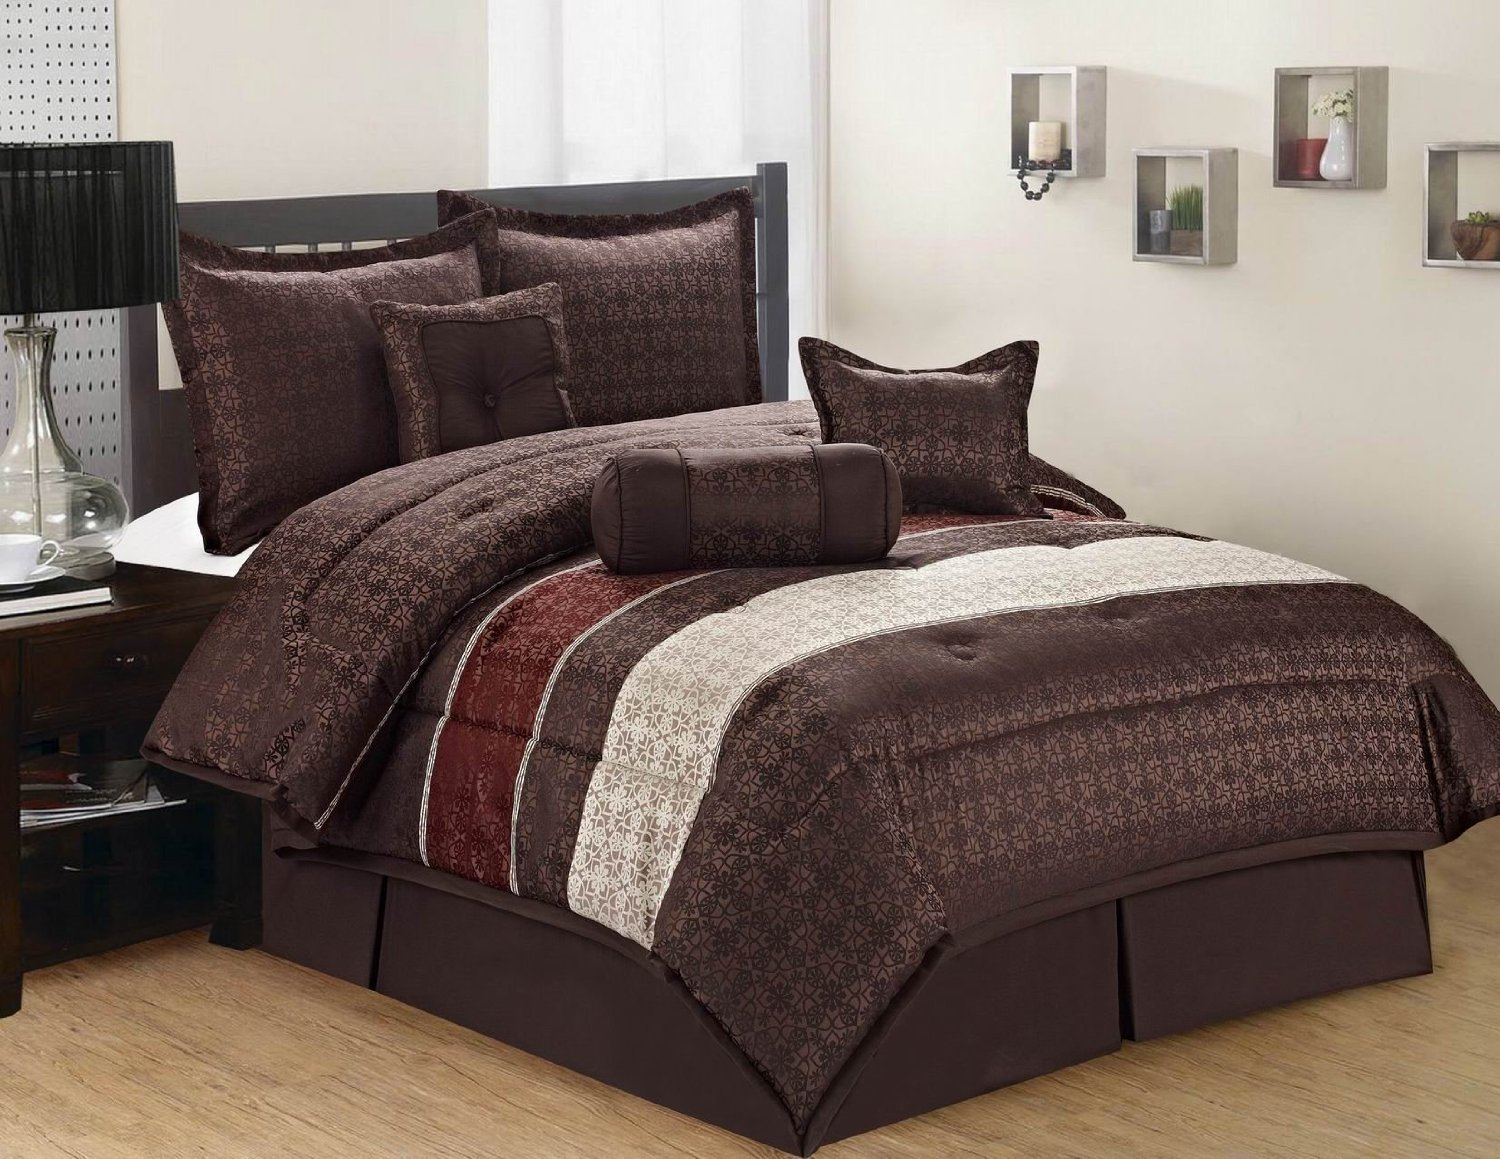 Jacquard 7 Pieces Brown Beige & Burgundy Striped and Floral Comforter Bedding Set